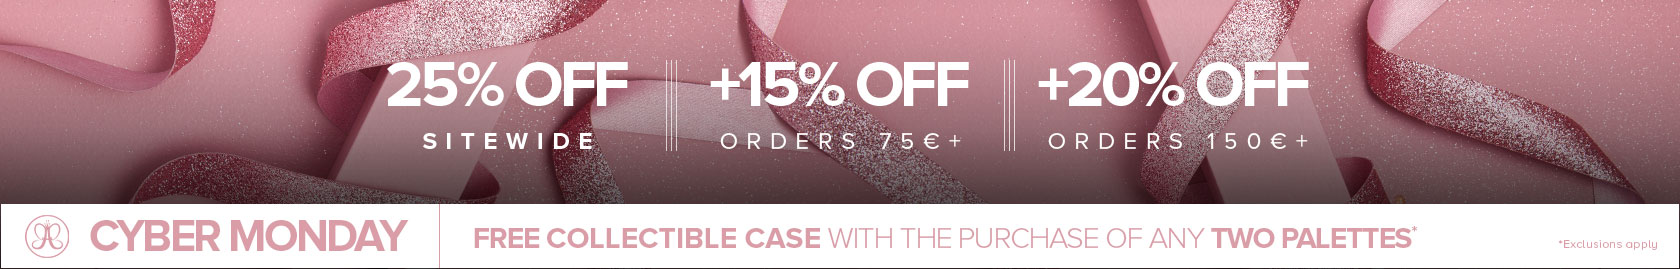 25% off sitewide | +15% off when you spend 75€ | +20% off when you spend 150€